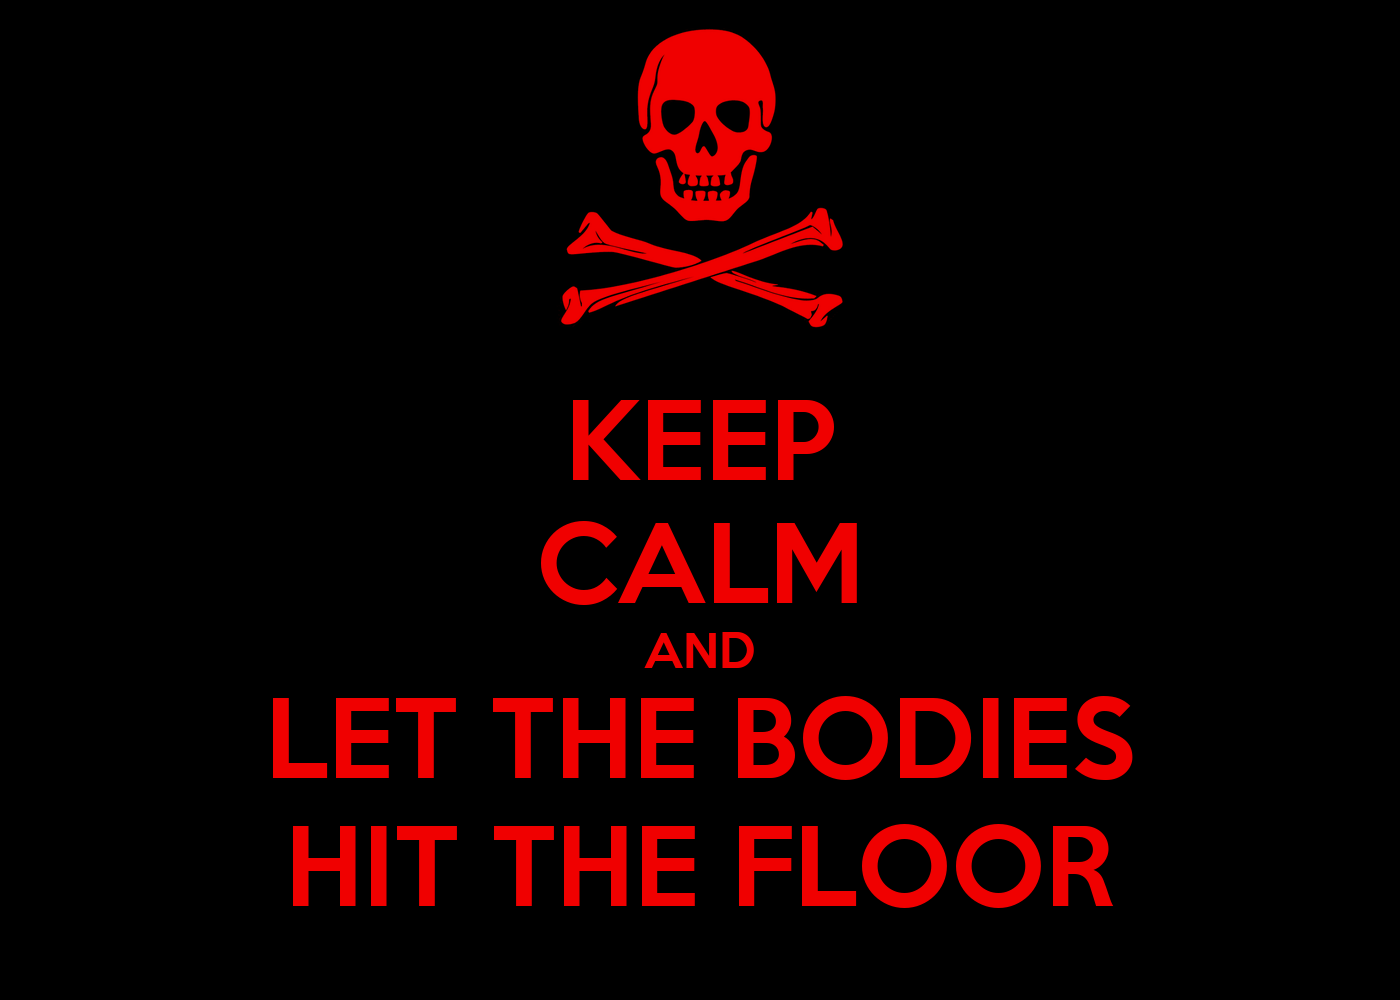 keep calm and let the bodies hit the floor poster